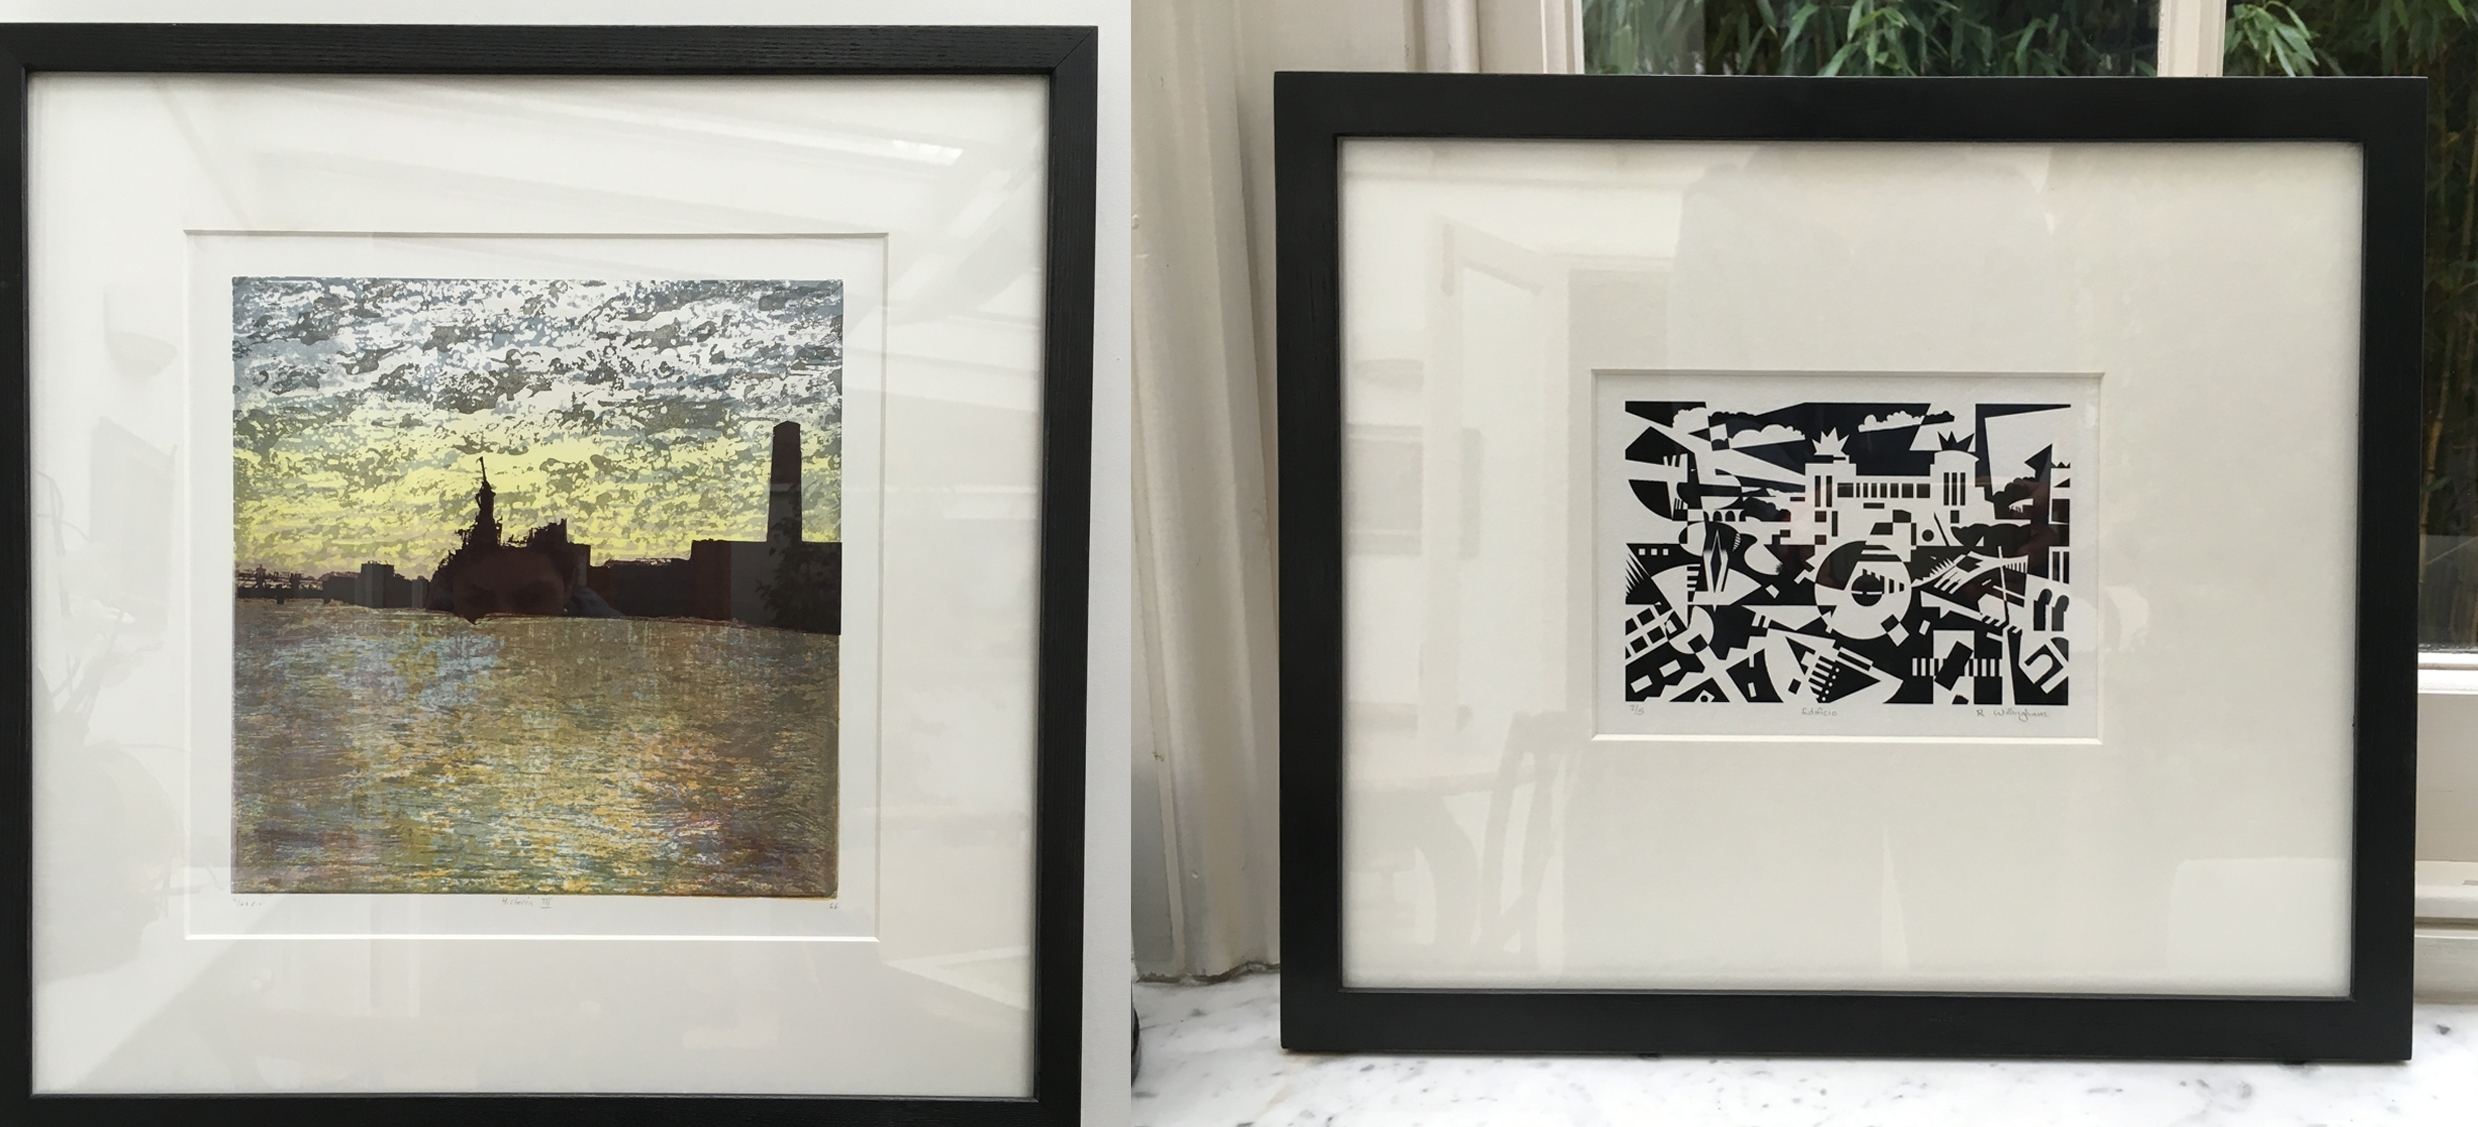 How To Frame Prints – Print Solo Pertaining To Current Abstract Framed Art Prints (View 4 of 15)